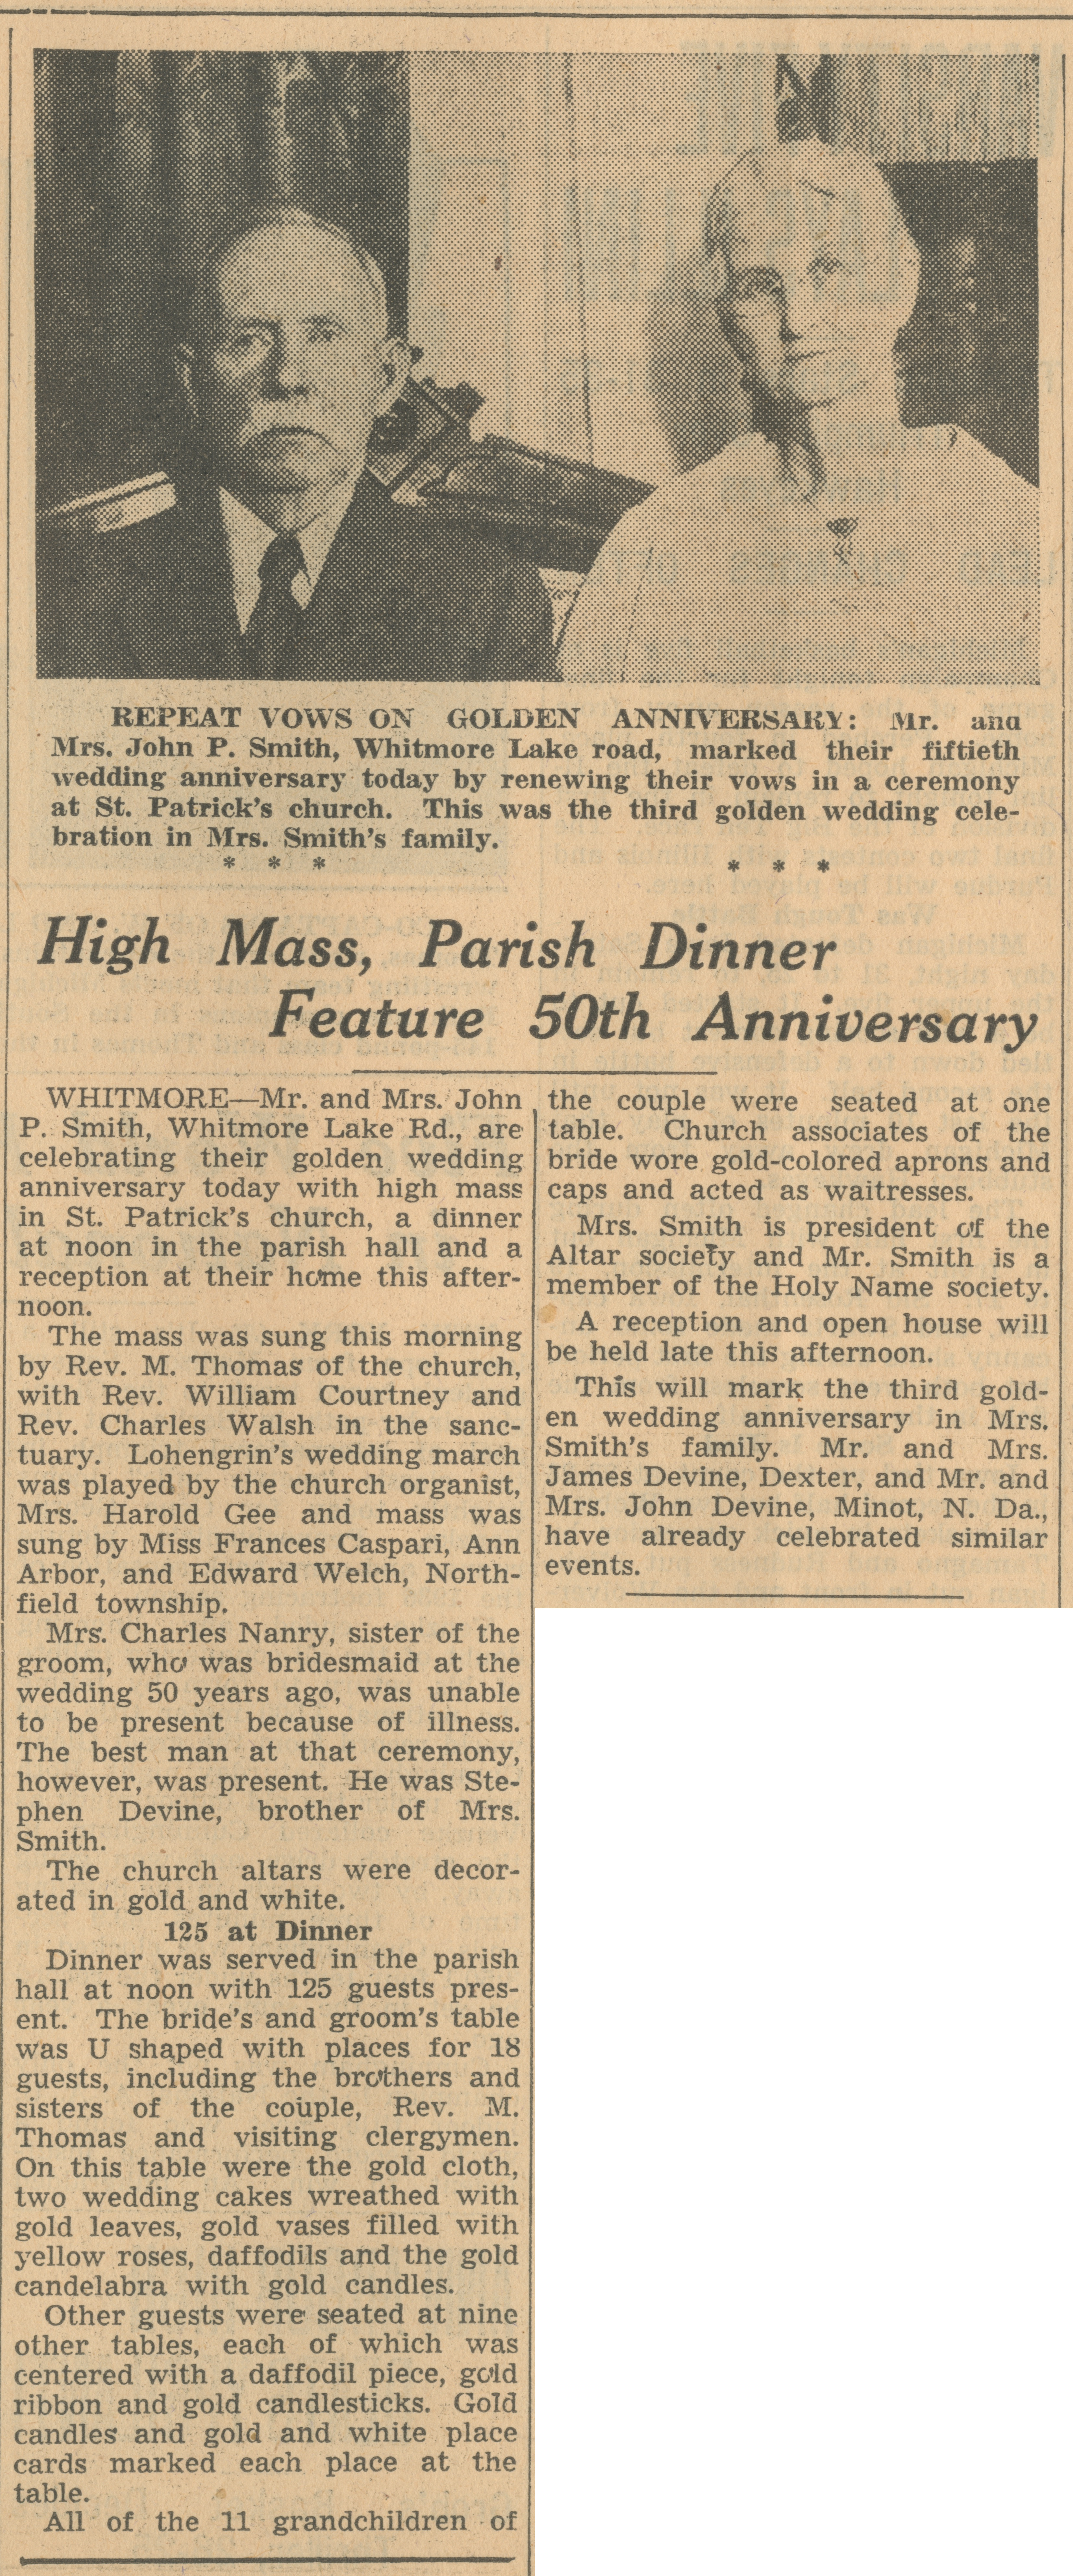 High Mass, Parish Dinner Feature 50th Anniversary image